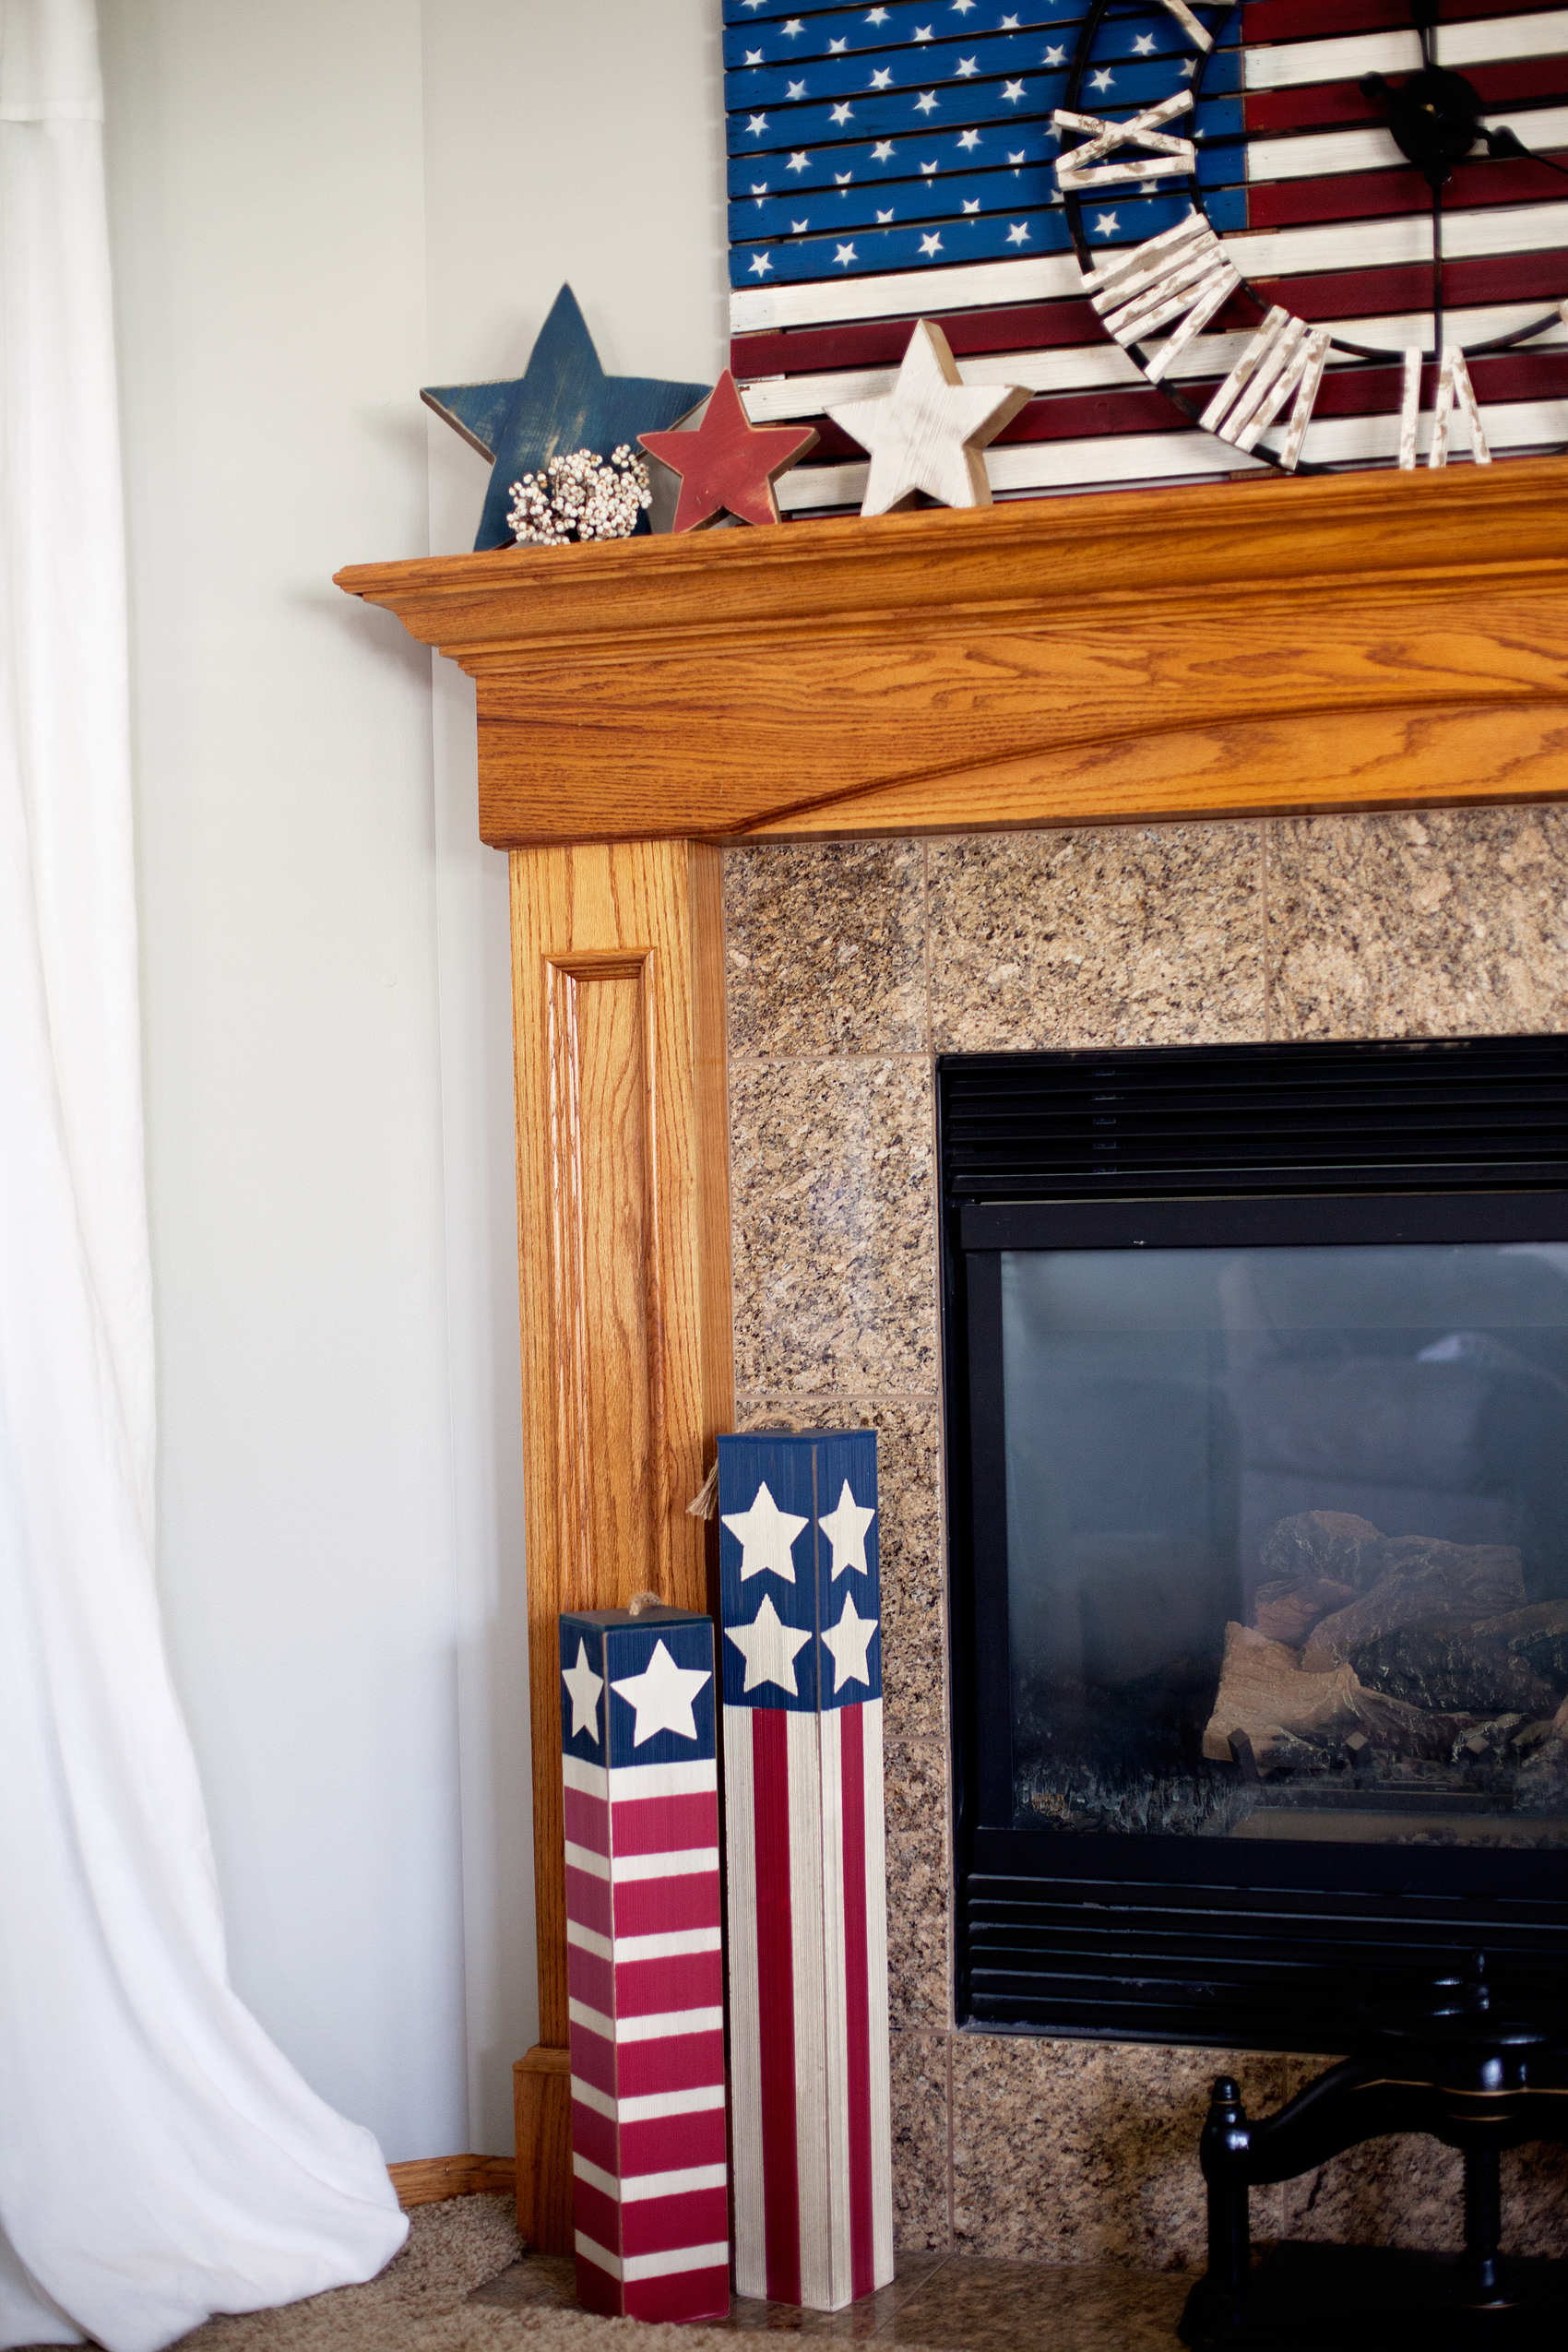 • Red White and Blue Decor • With the Summer months rolling in, it's time to give a little nod to our favorite ole' Red White and Blue! Michaels has a whole new line of FUN Americana decor that you're going to love! Here's what I found to dress-up my mantel for the Summer holidays via WhipperBerry